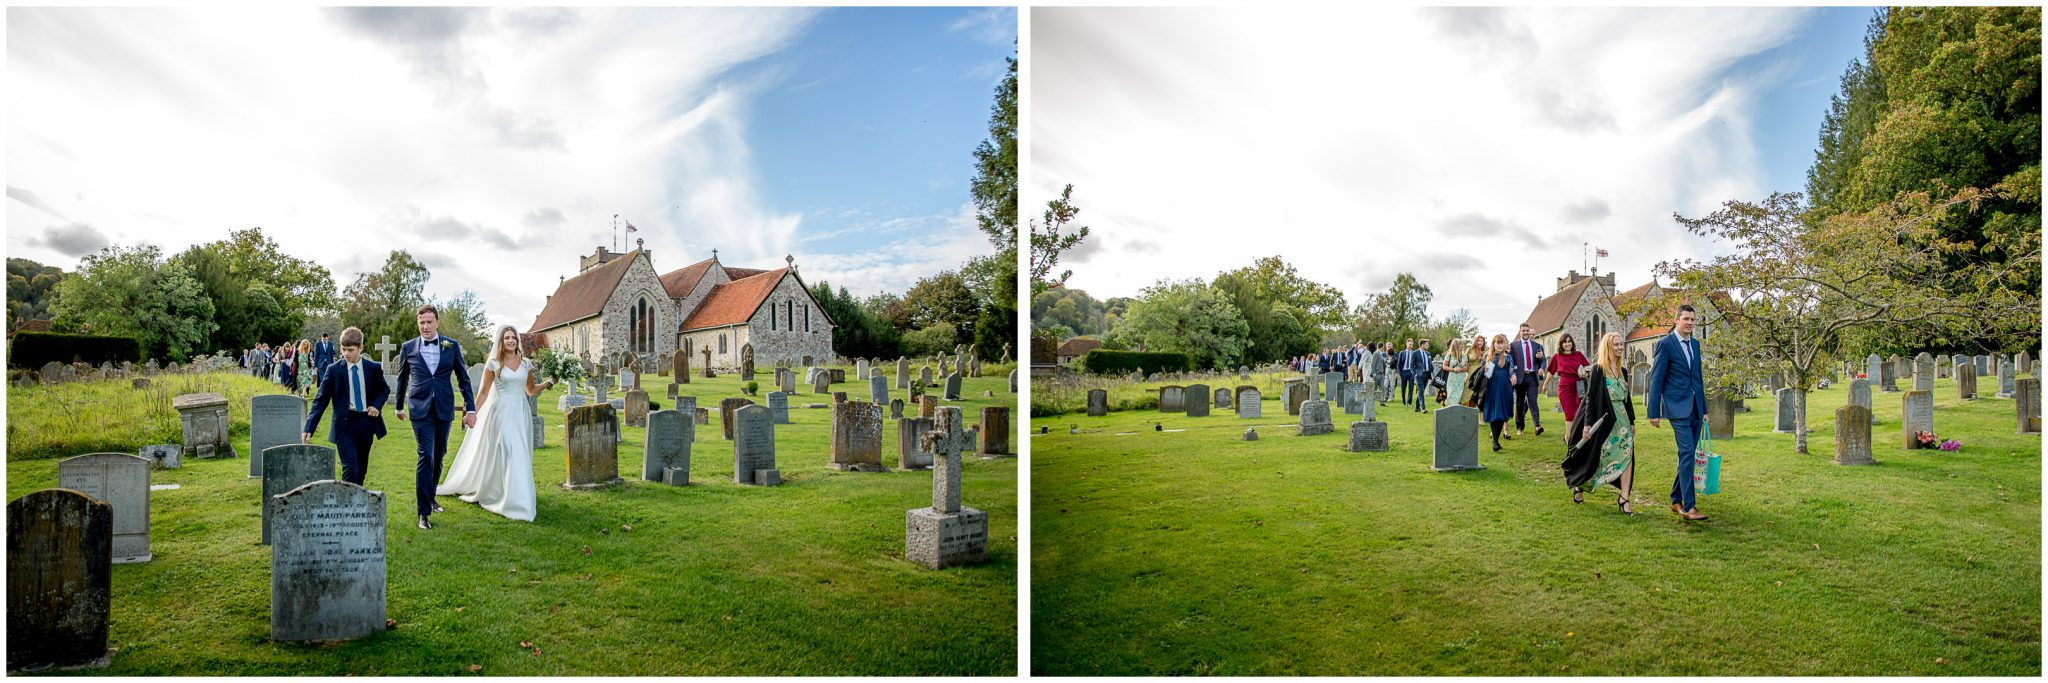 The couple lead their wedding guests through the churchyard to the wedding reception